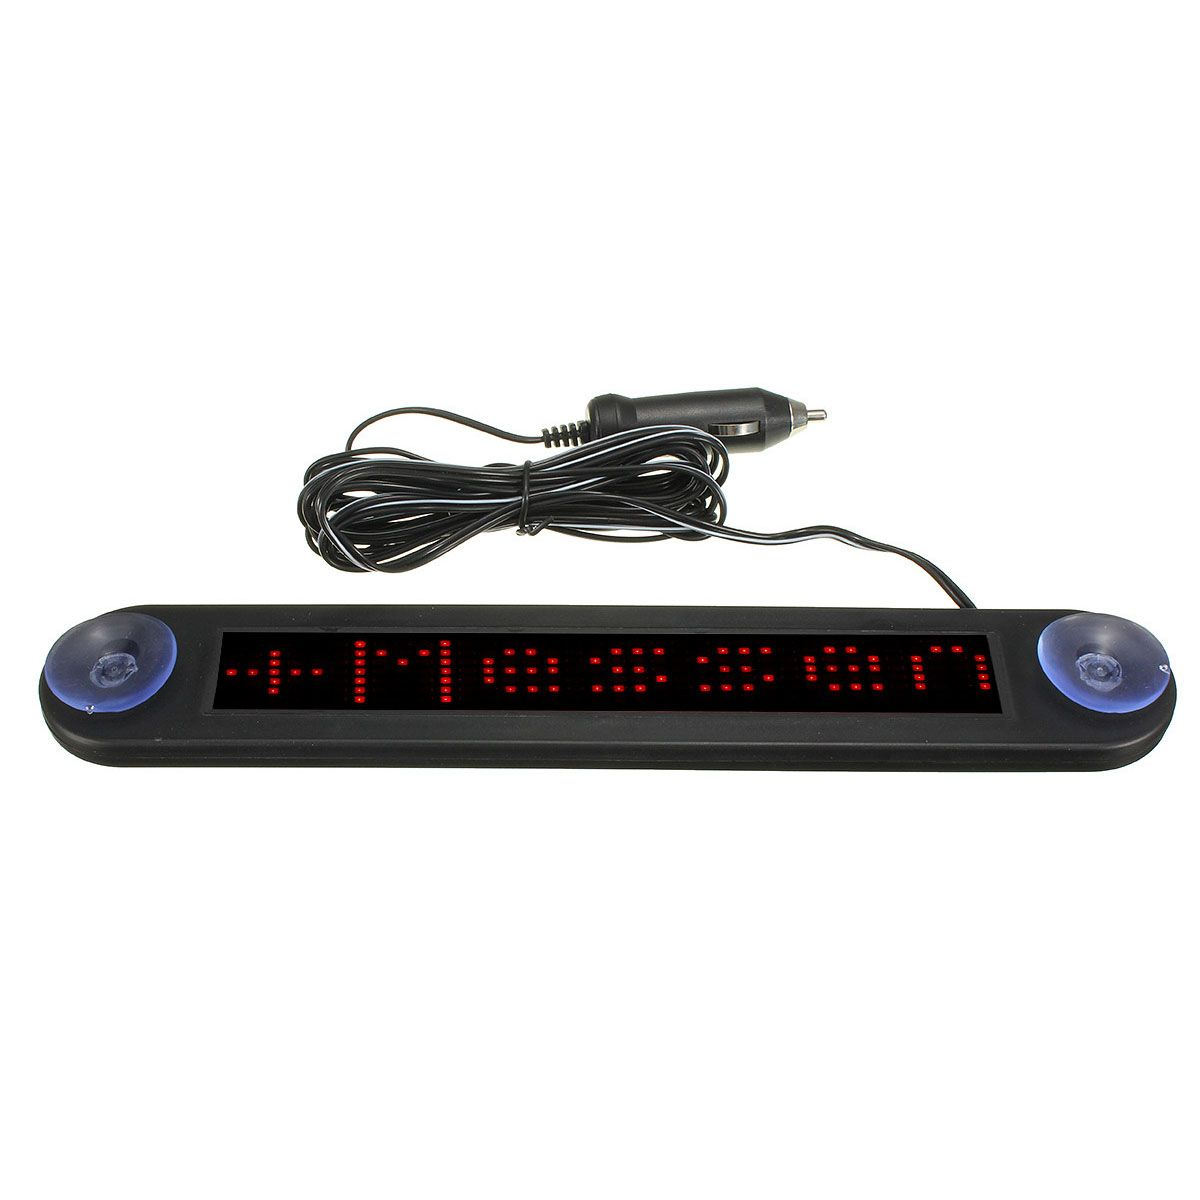 New 12v Led Car Programmable Message Sign Moving Scrolling Display Board W Remote Red Car Electronics 12v Led Car